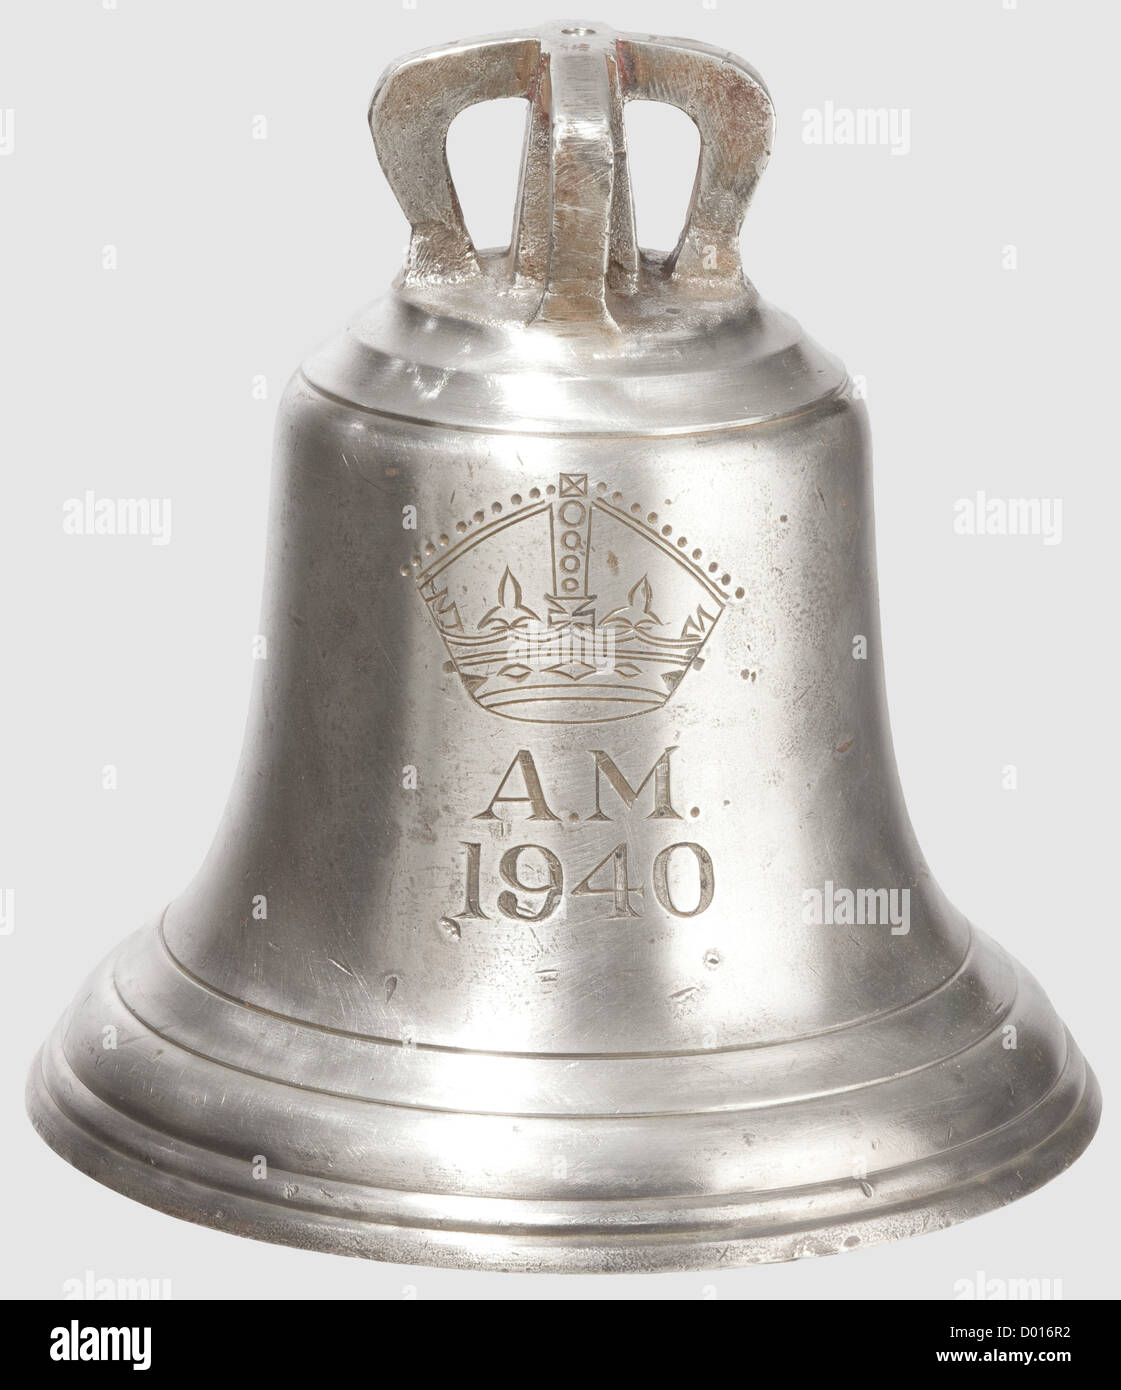 A 'Scramble' Bell, 1940. An early World War Two Royal Air Force 'Scramble' Bell, according to the - Stock Image